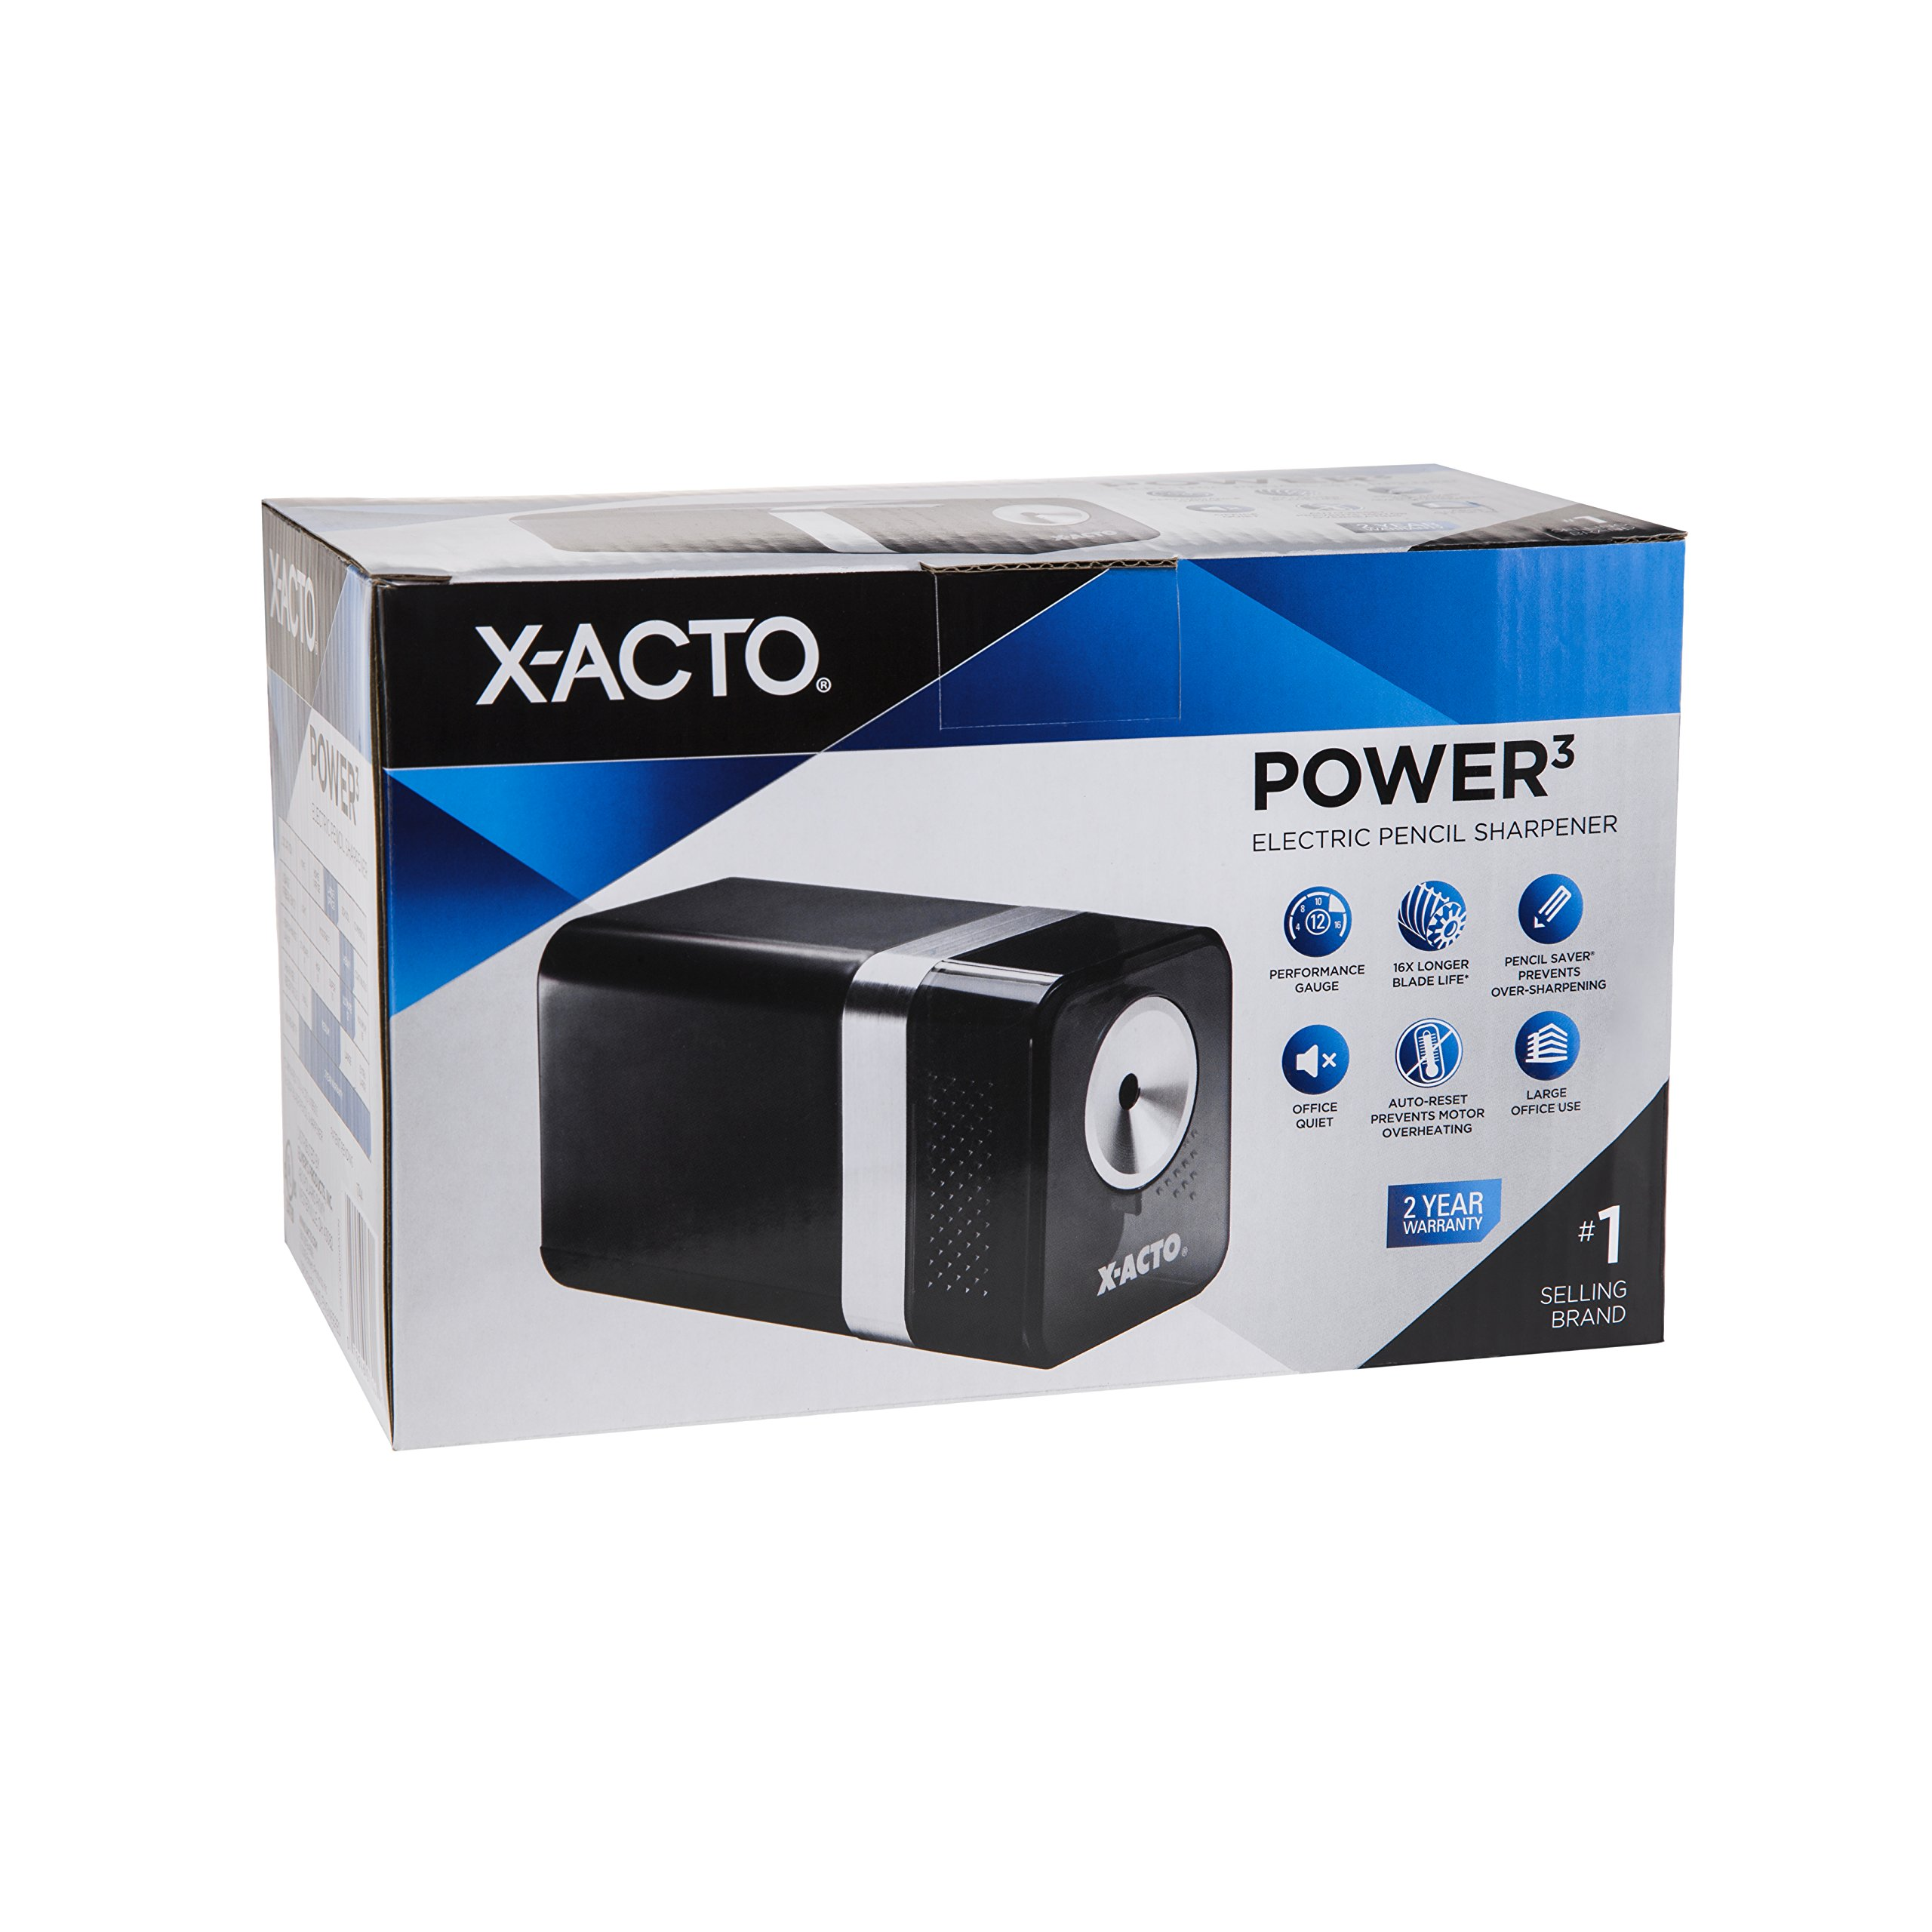 X-ACTO 1744 Power3 Office Electric Pencil Sharpener, Black by X-Acto (Image #5)